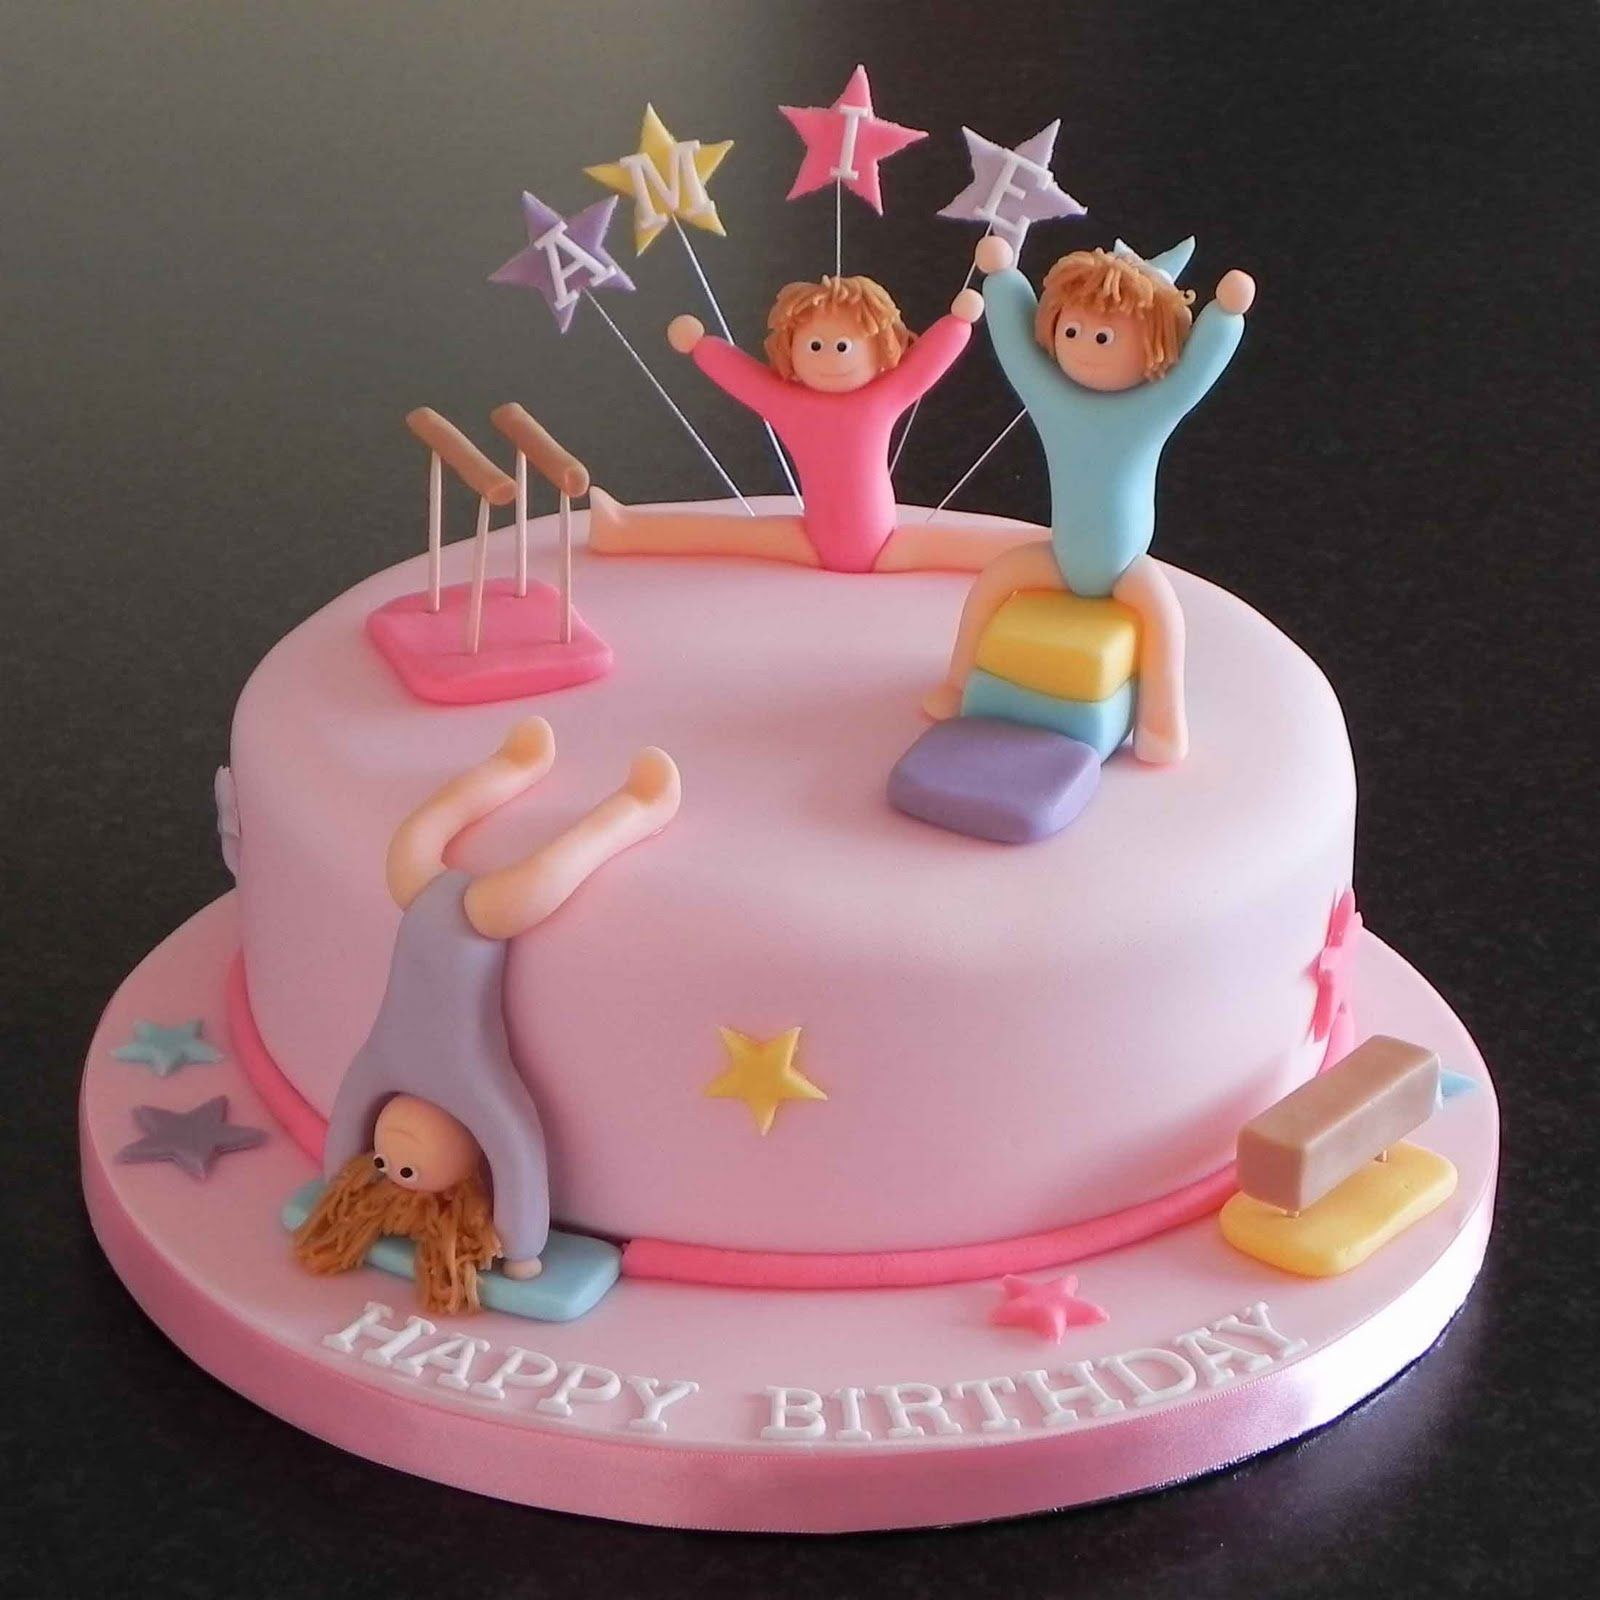 23+ Inspiration Image of Gymnastics Birthday Cake